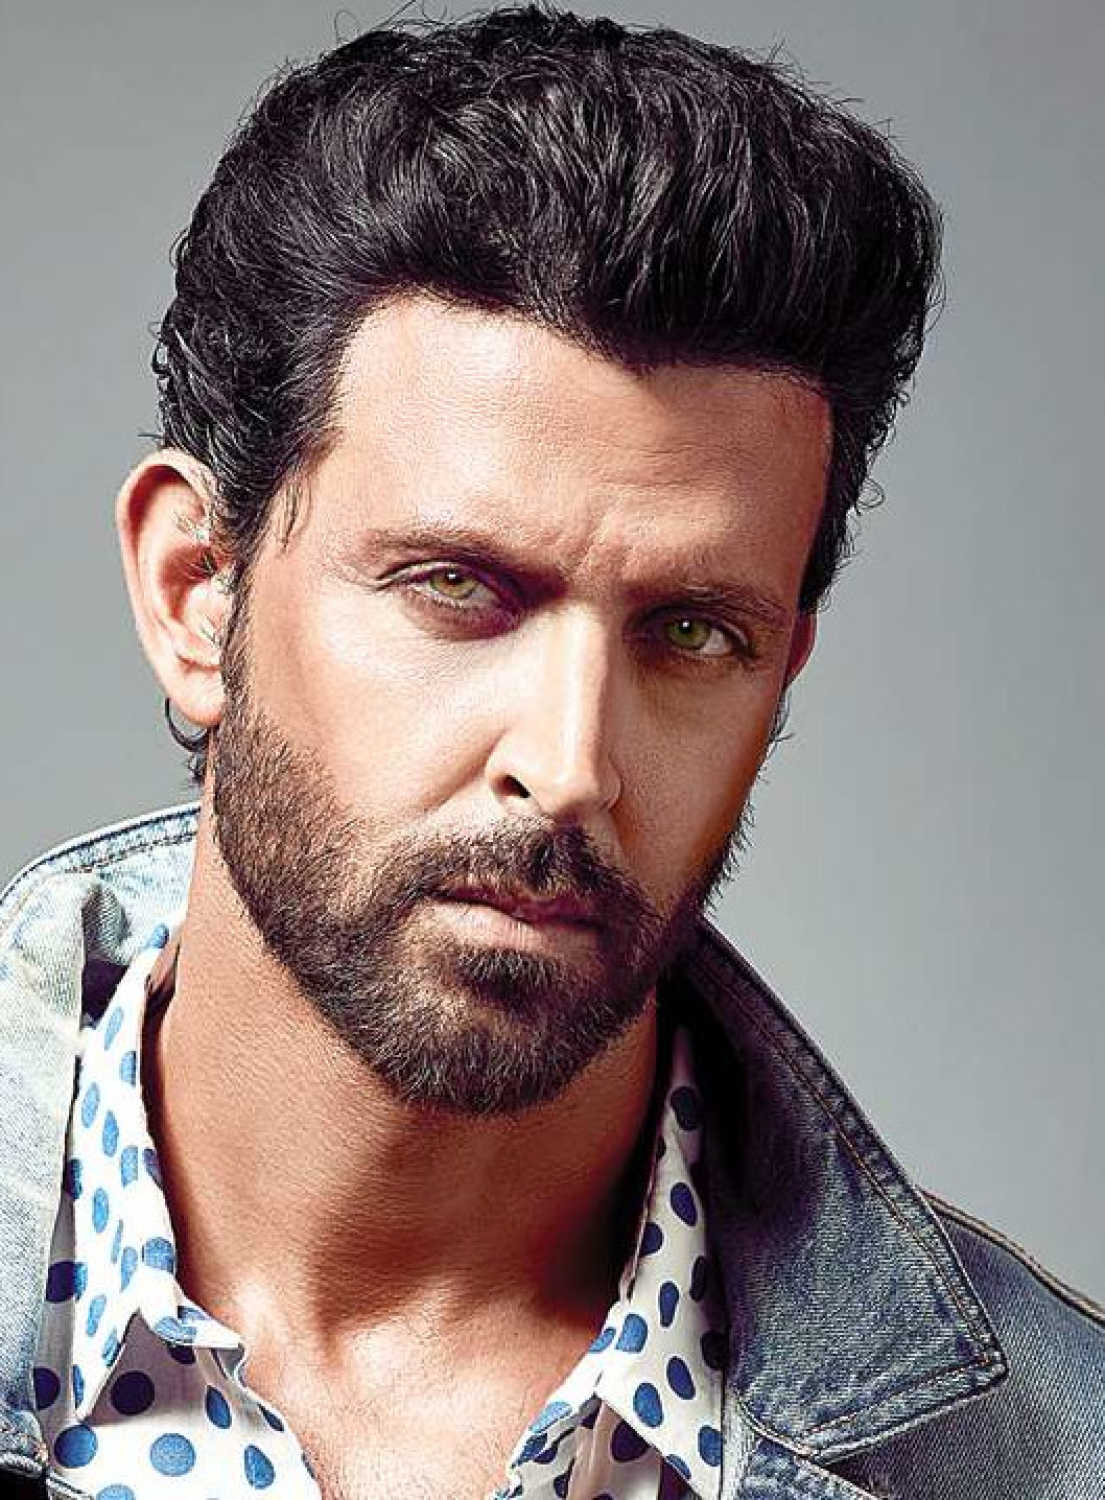 Hrithik Roshan movies, filmography, biography and songs